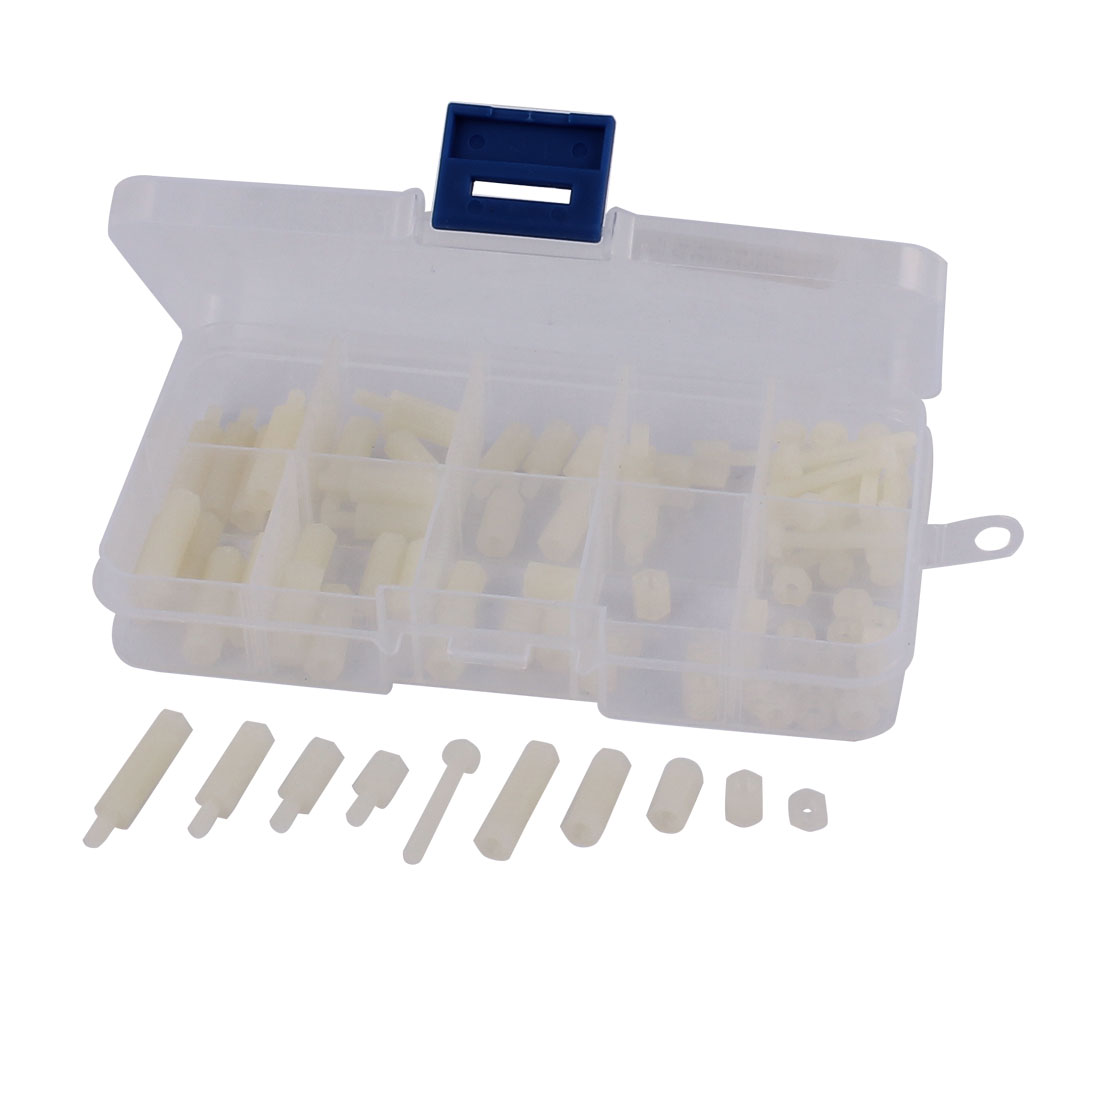 88pcs M3 White Nylon Hex Spacers Screw Nut Stand-off Plastic Assortment Kit